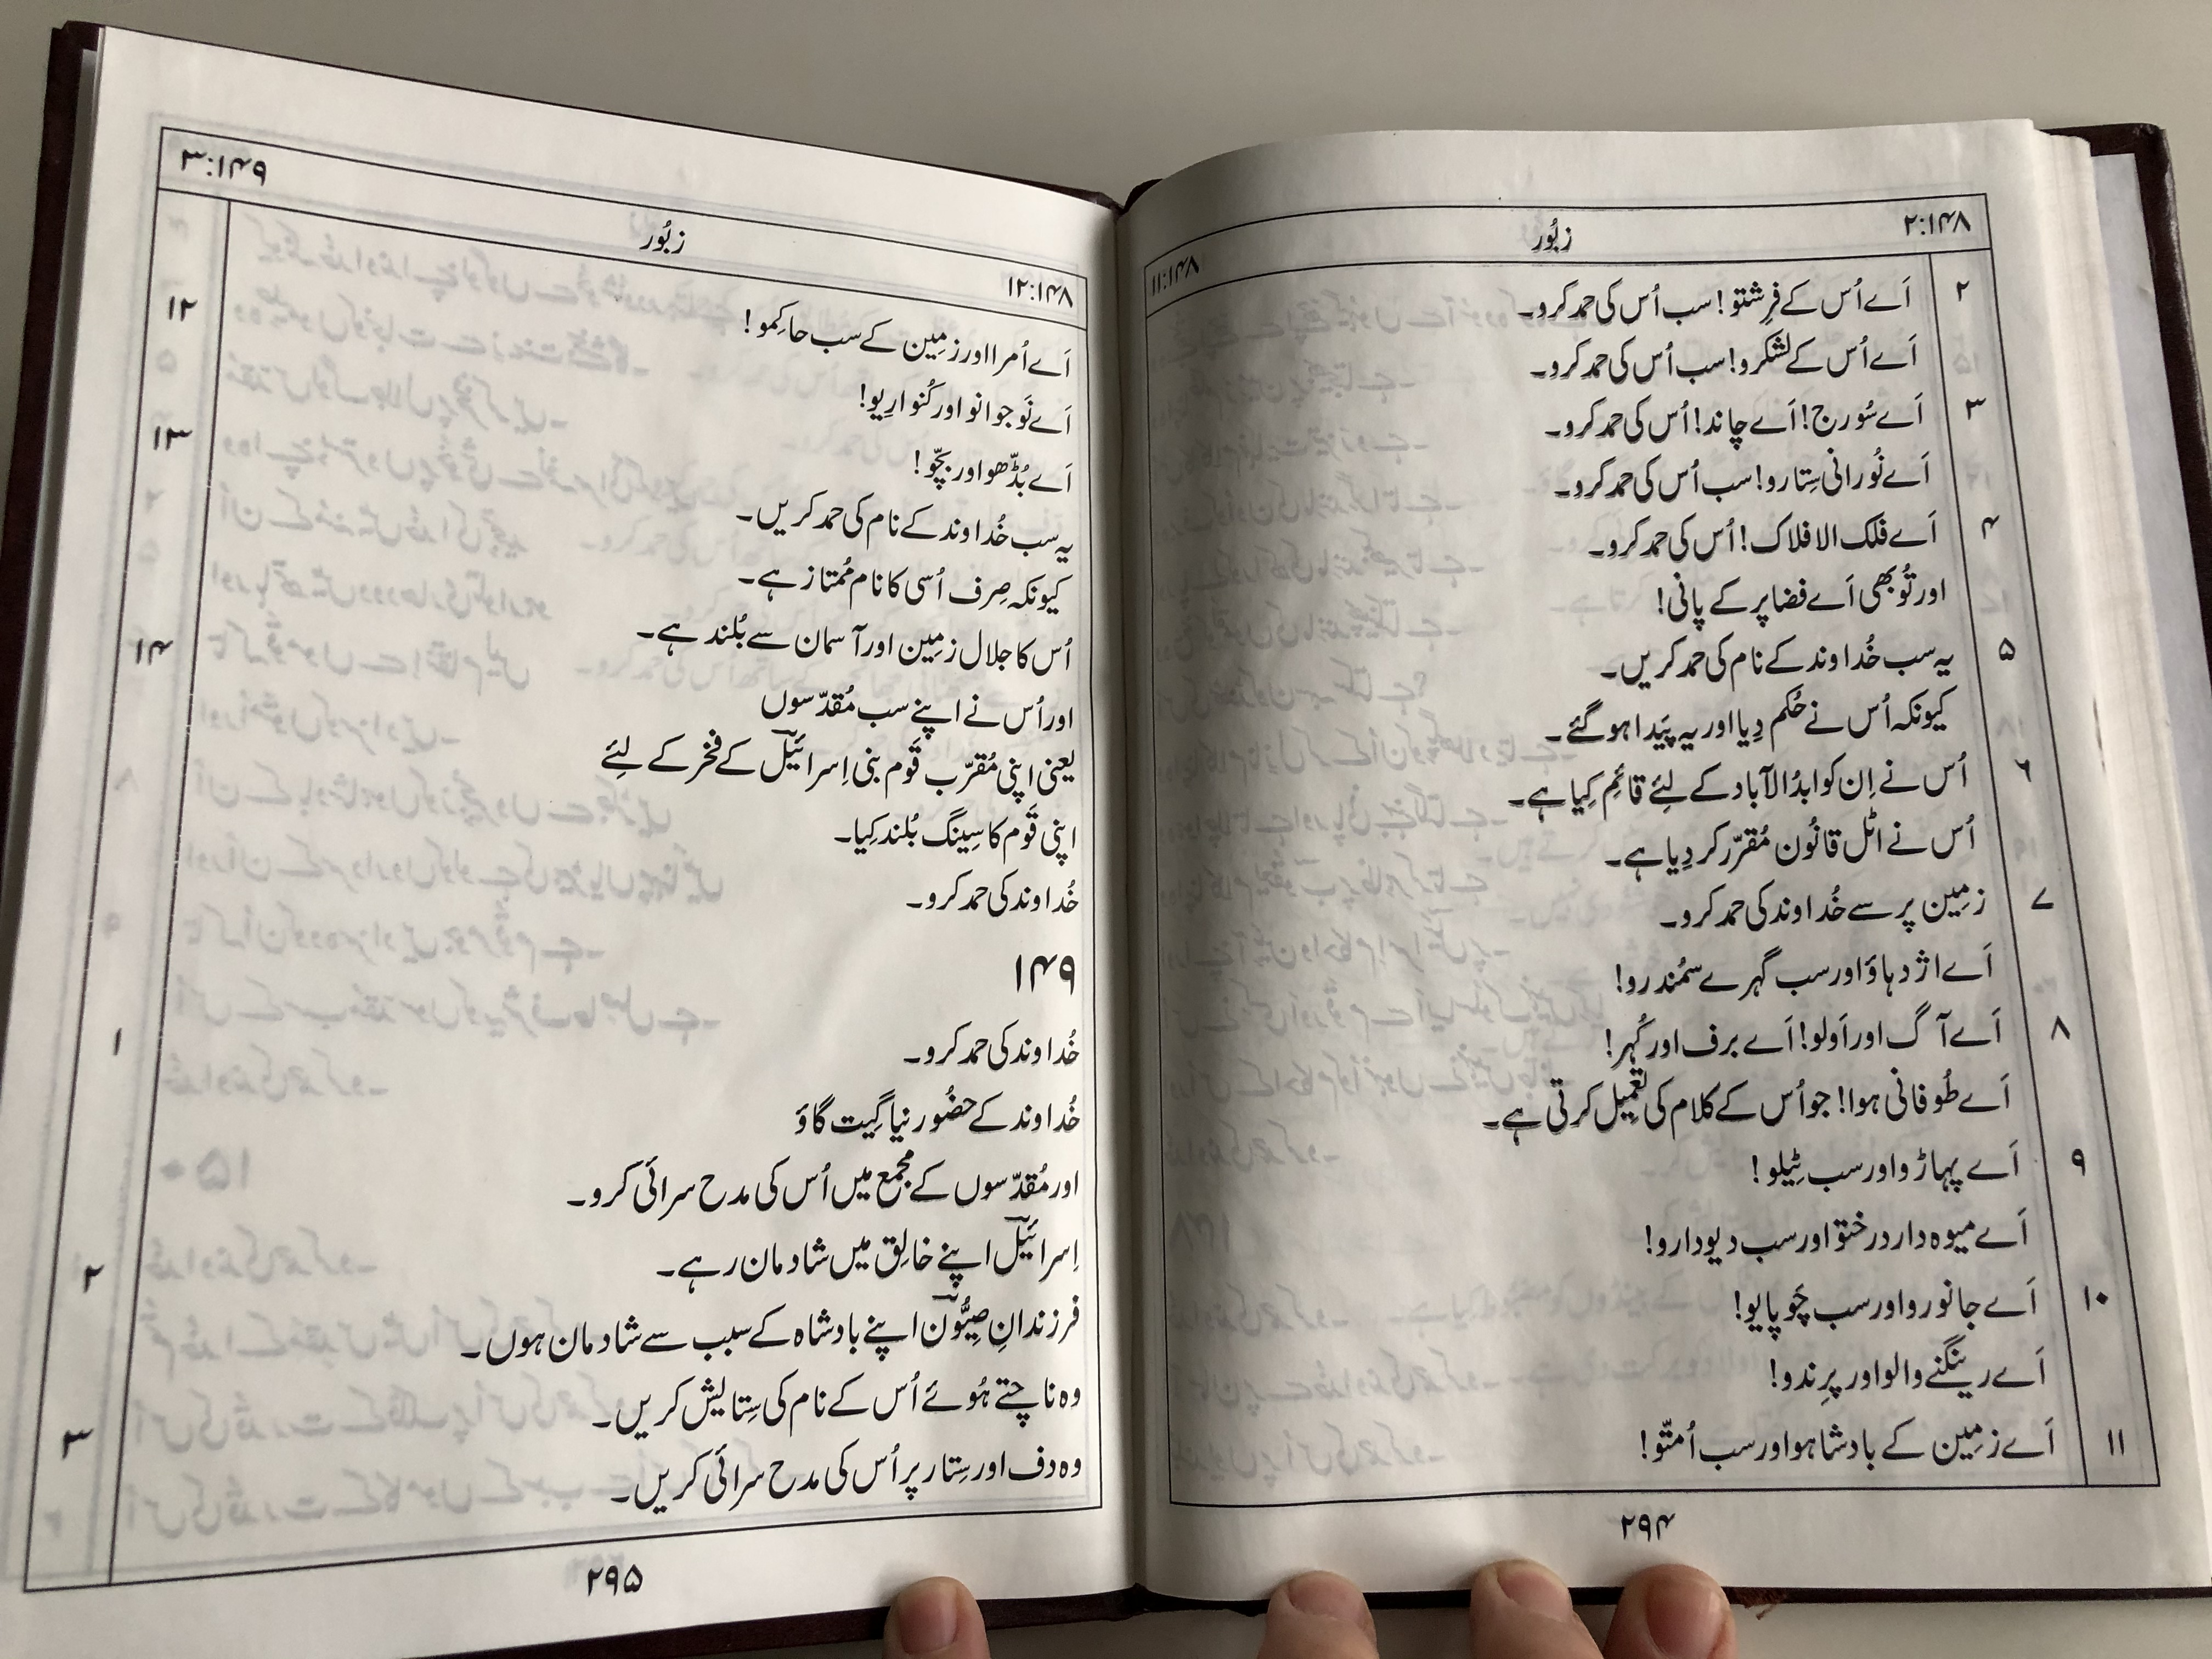 book-of-psalms-from-the-old-testament-in-urdu-language-large-print-5-.jpg